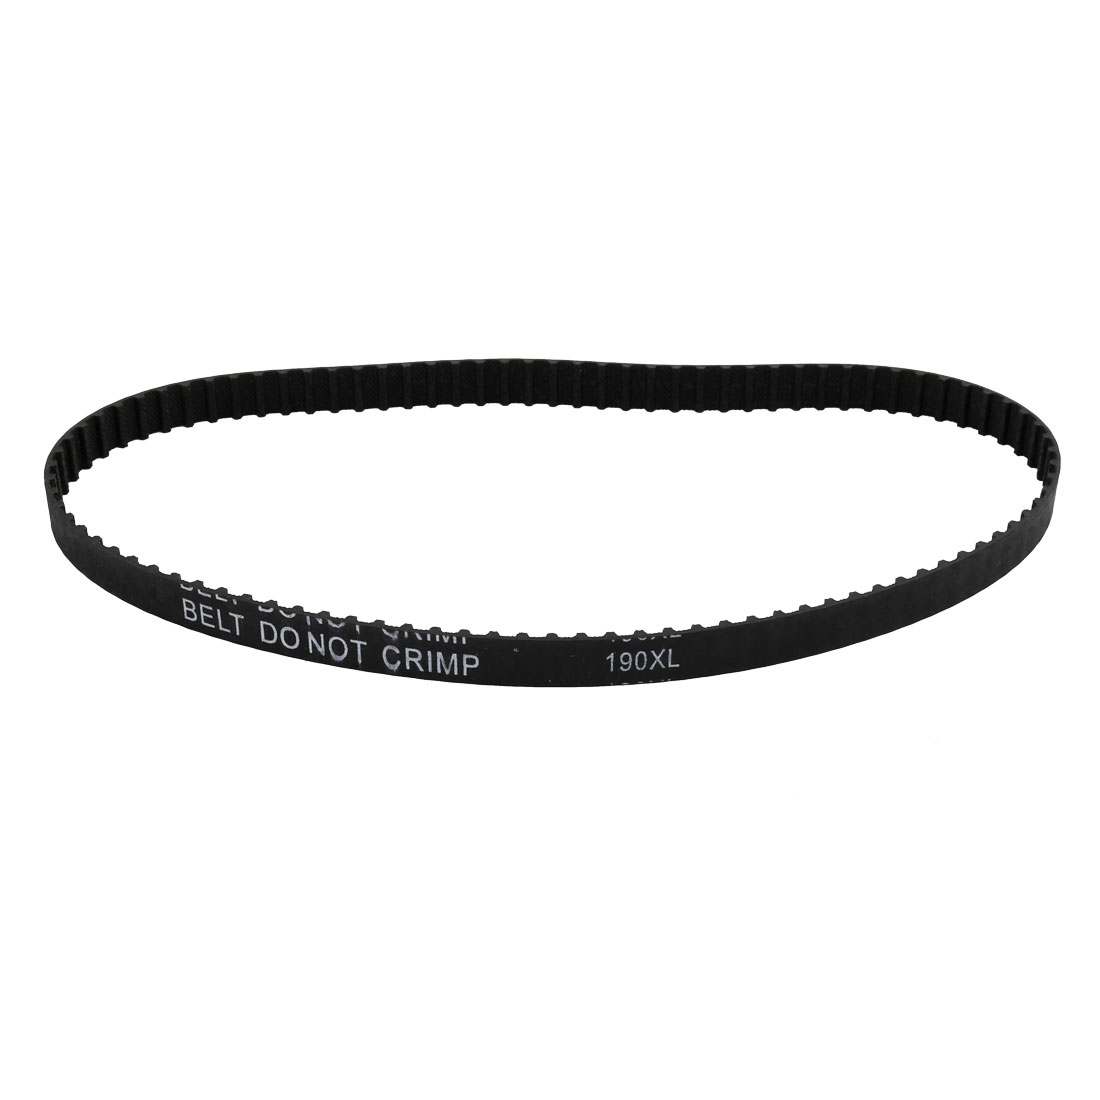 190XL 95 Teeth 10mm Width 5.08mm Pitch Stepper Motor Rubber Timing Belt Black